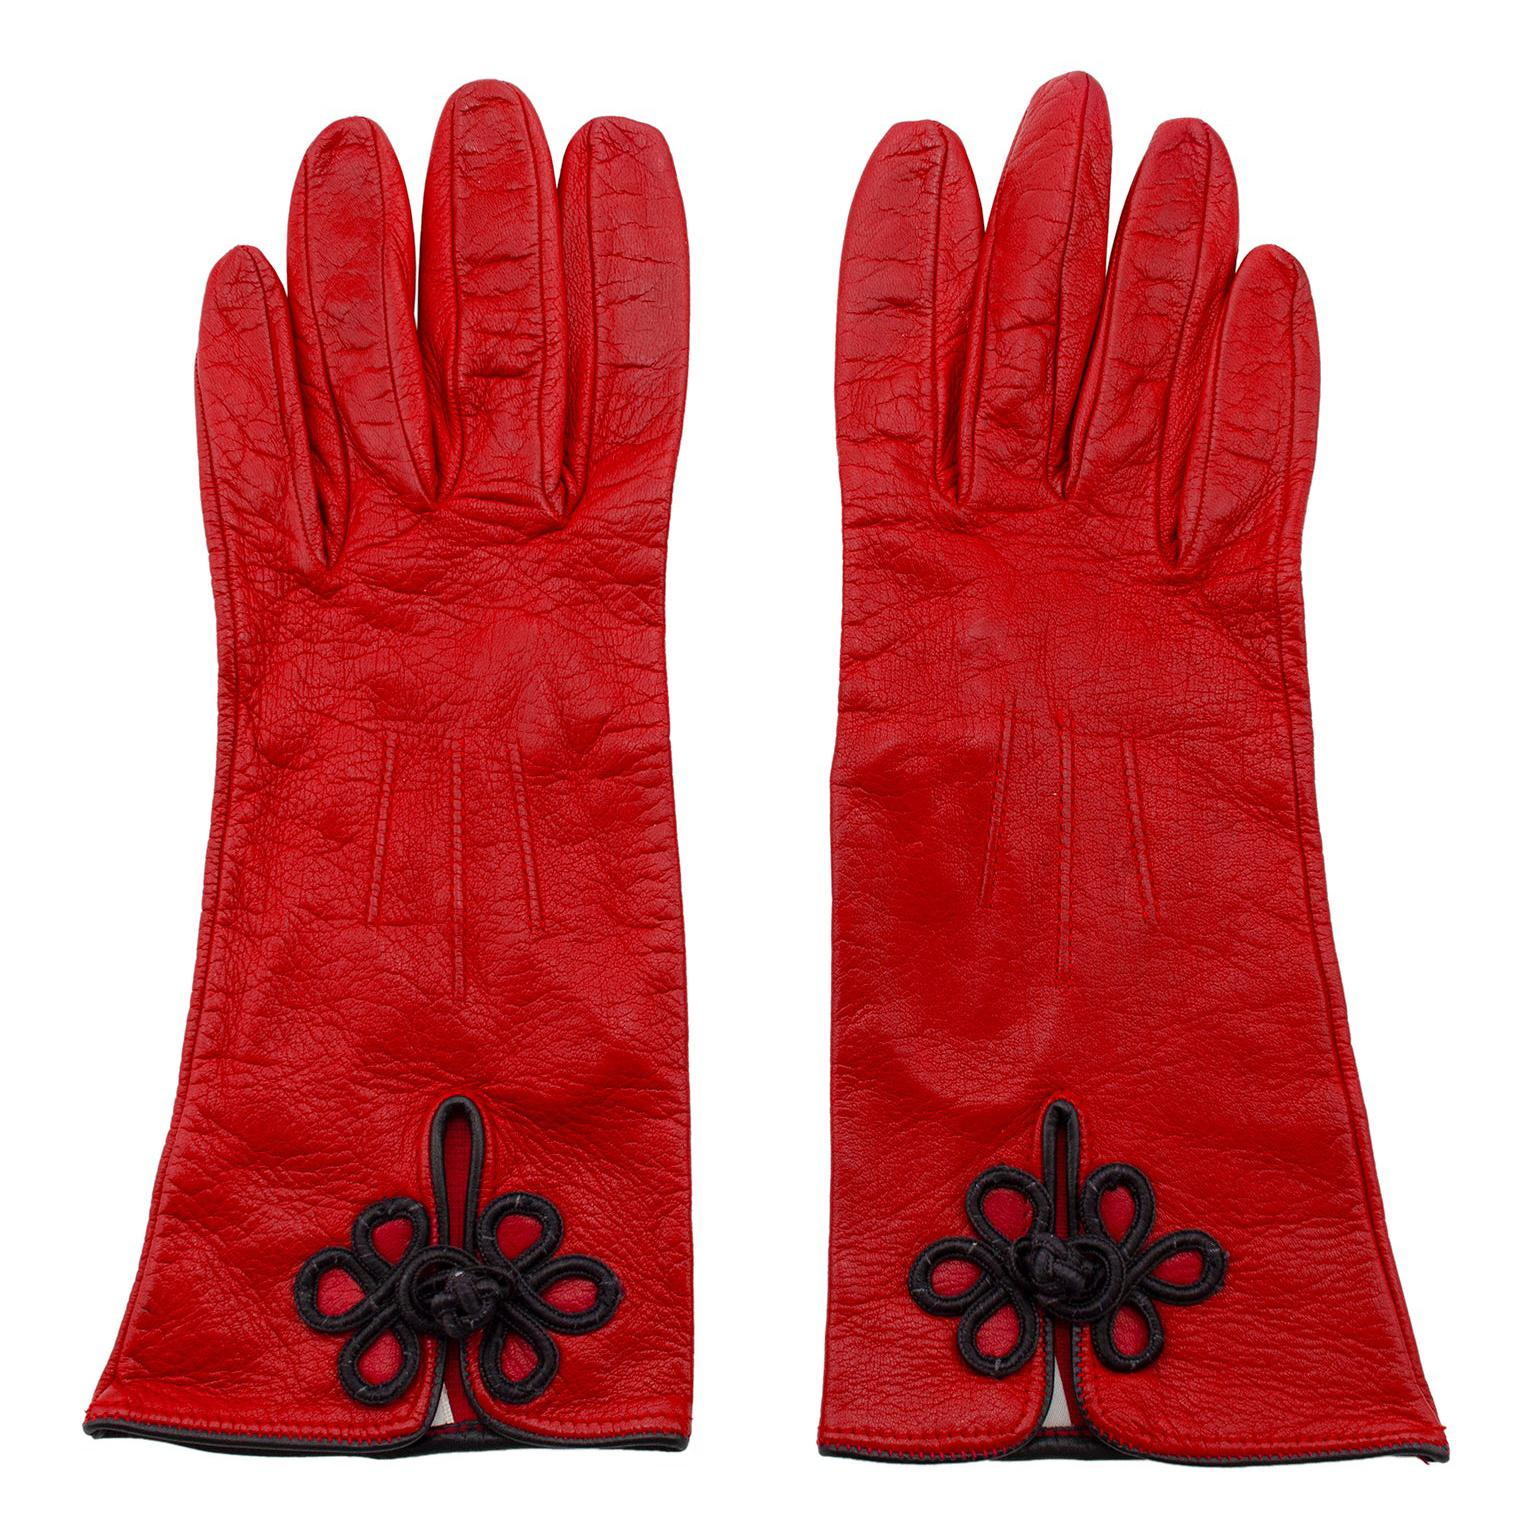 1990s Perry Ellis Red Leather Gloves with Black Passimenterie